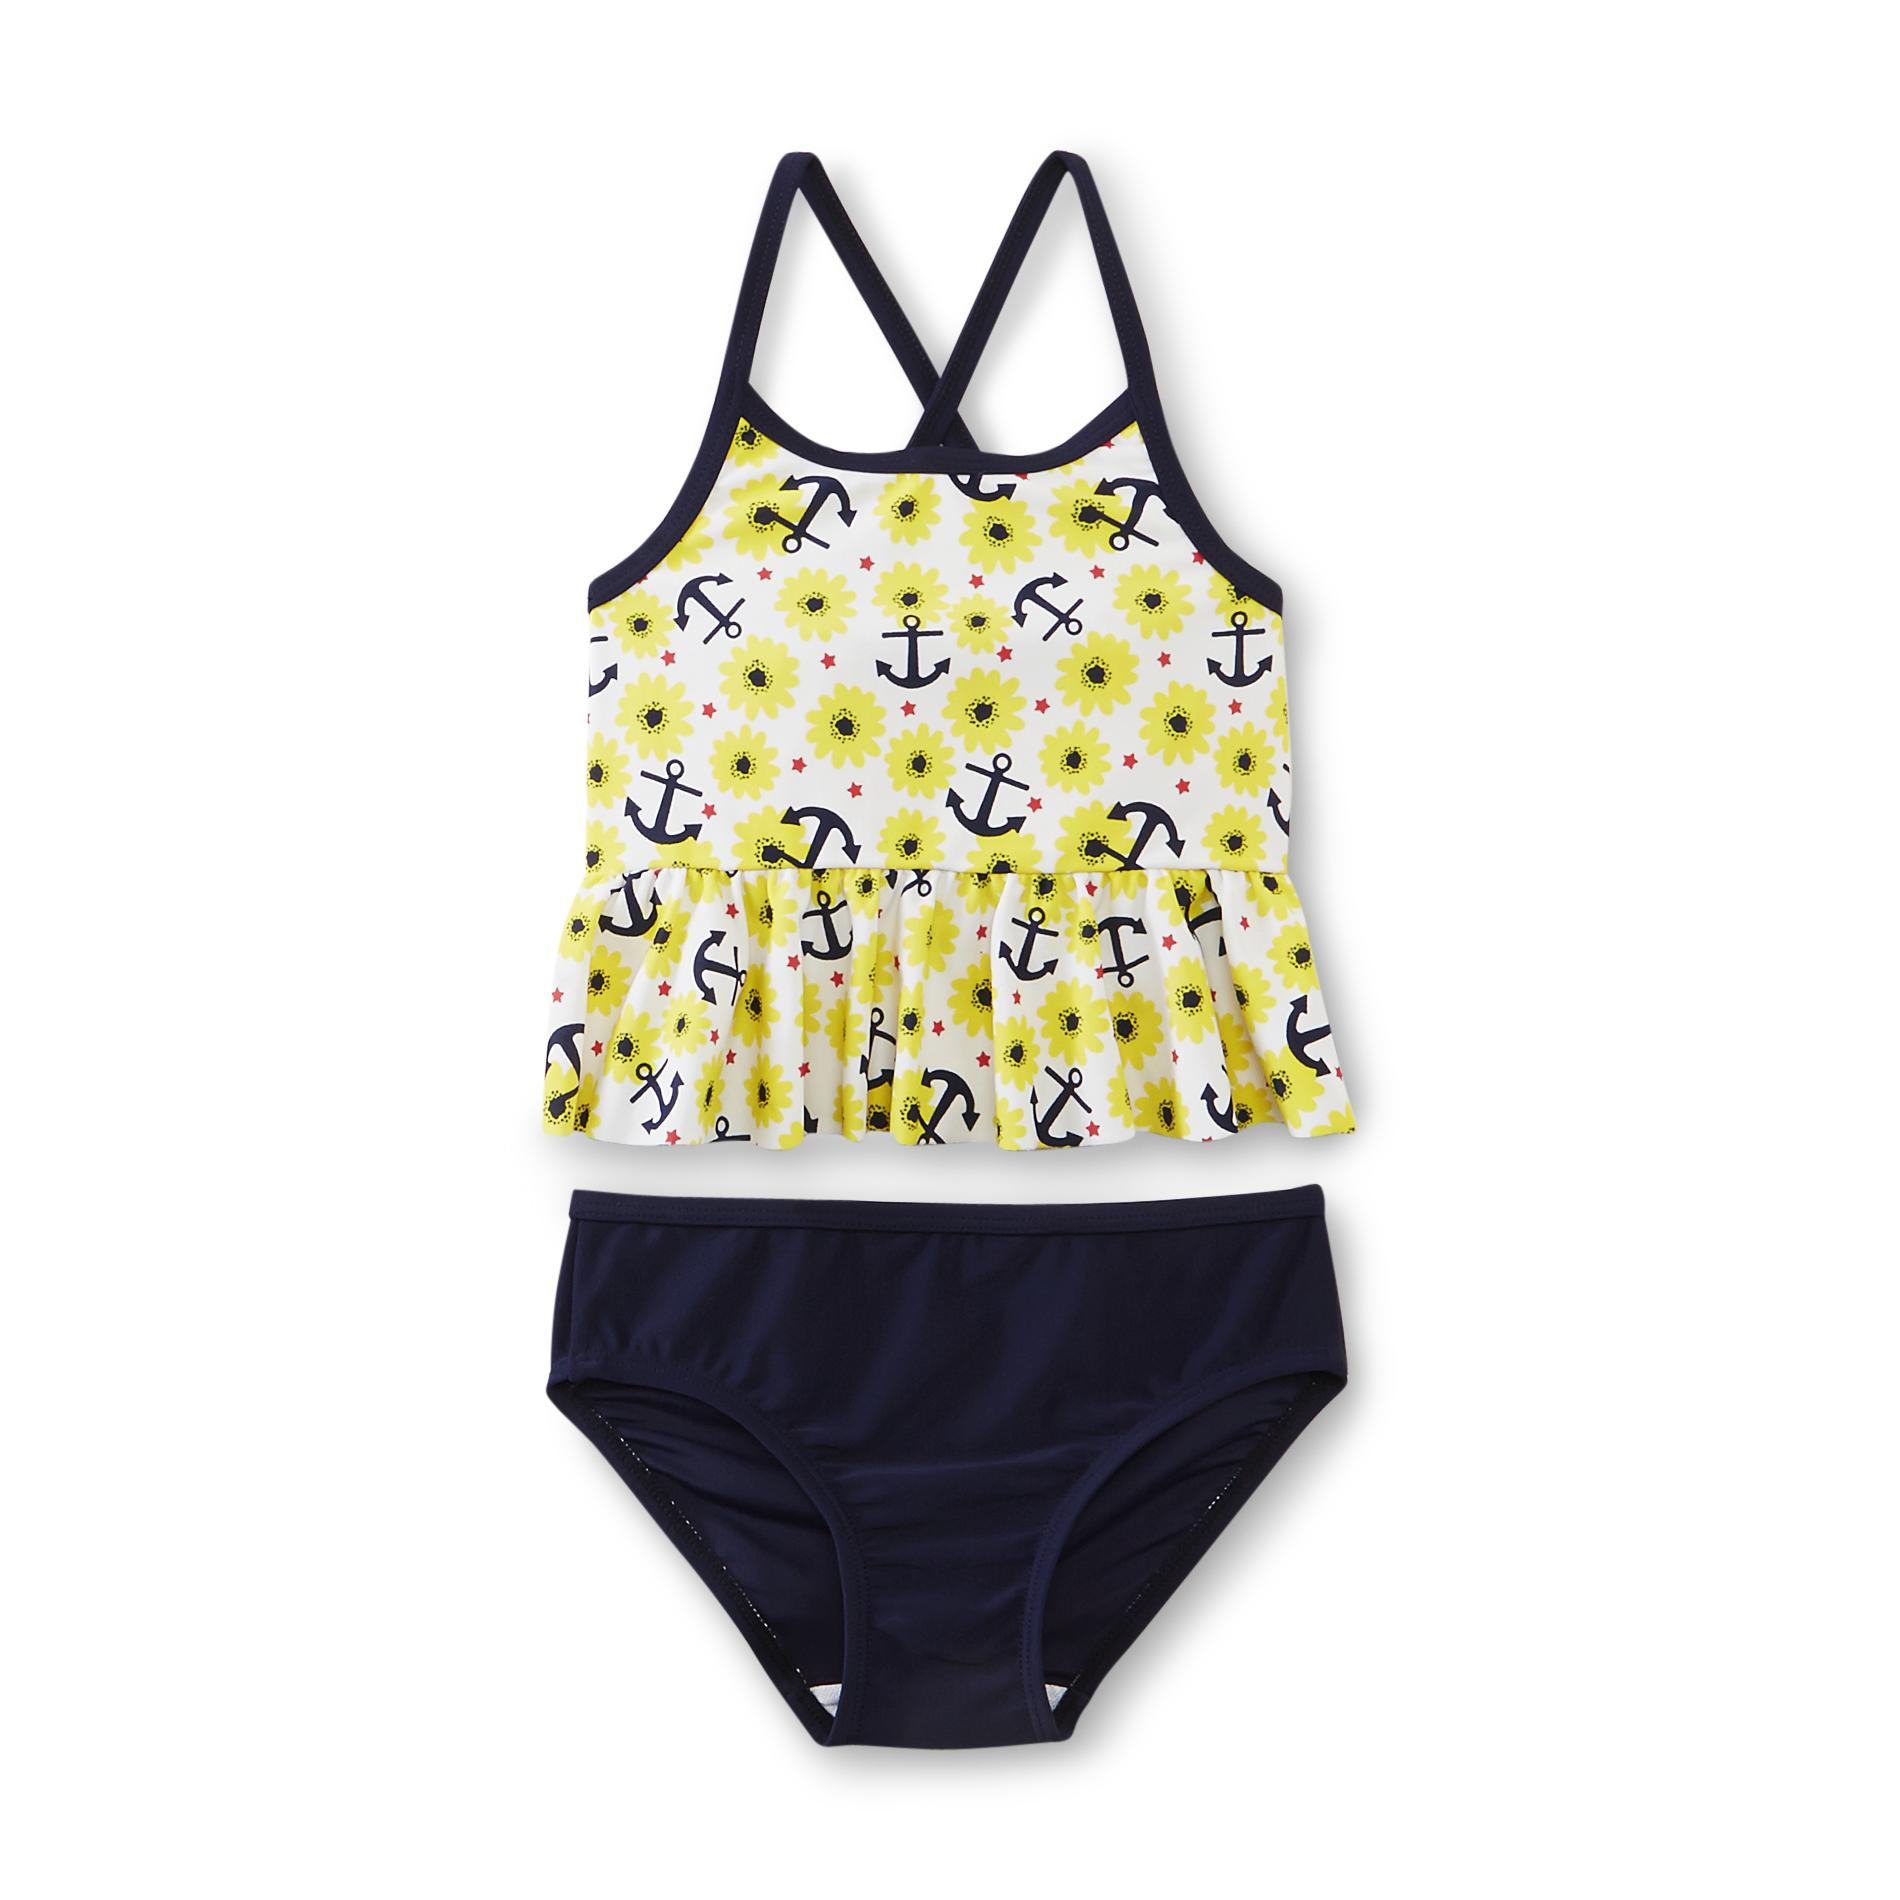 Infant & Toddler Girl's Ruffle Tankini Swimsuit - Anchor & Floral